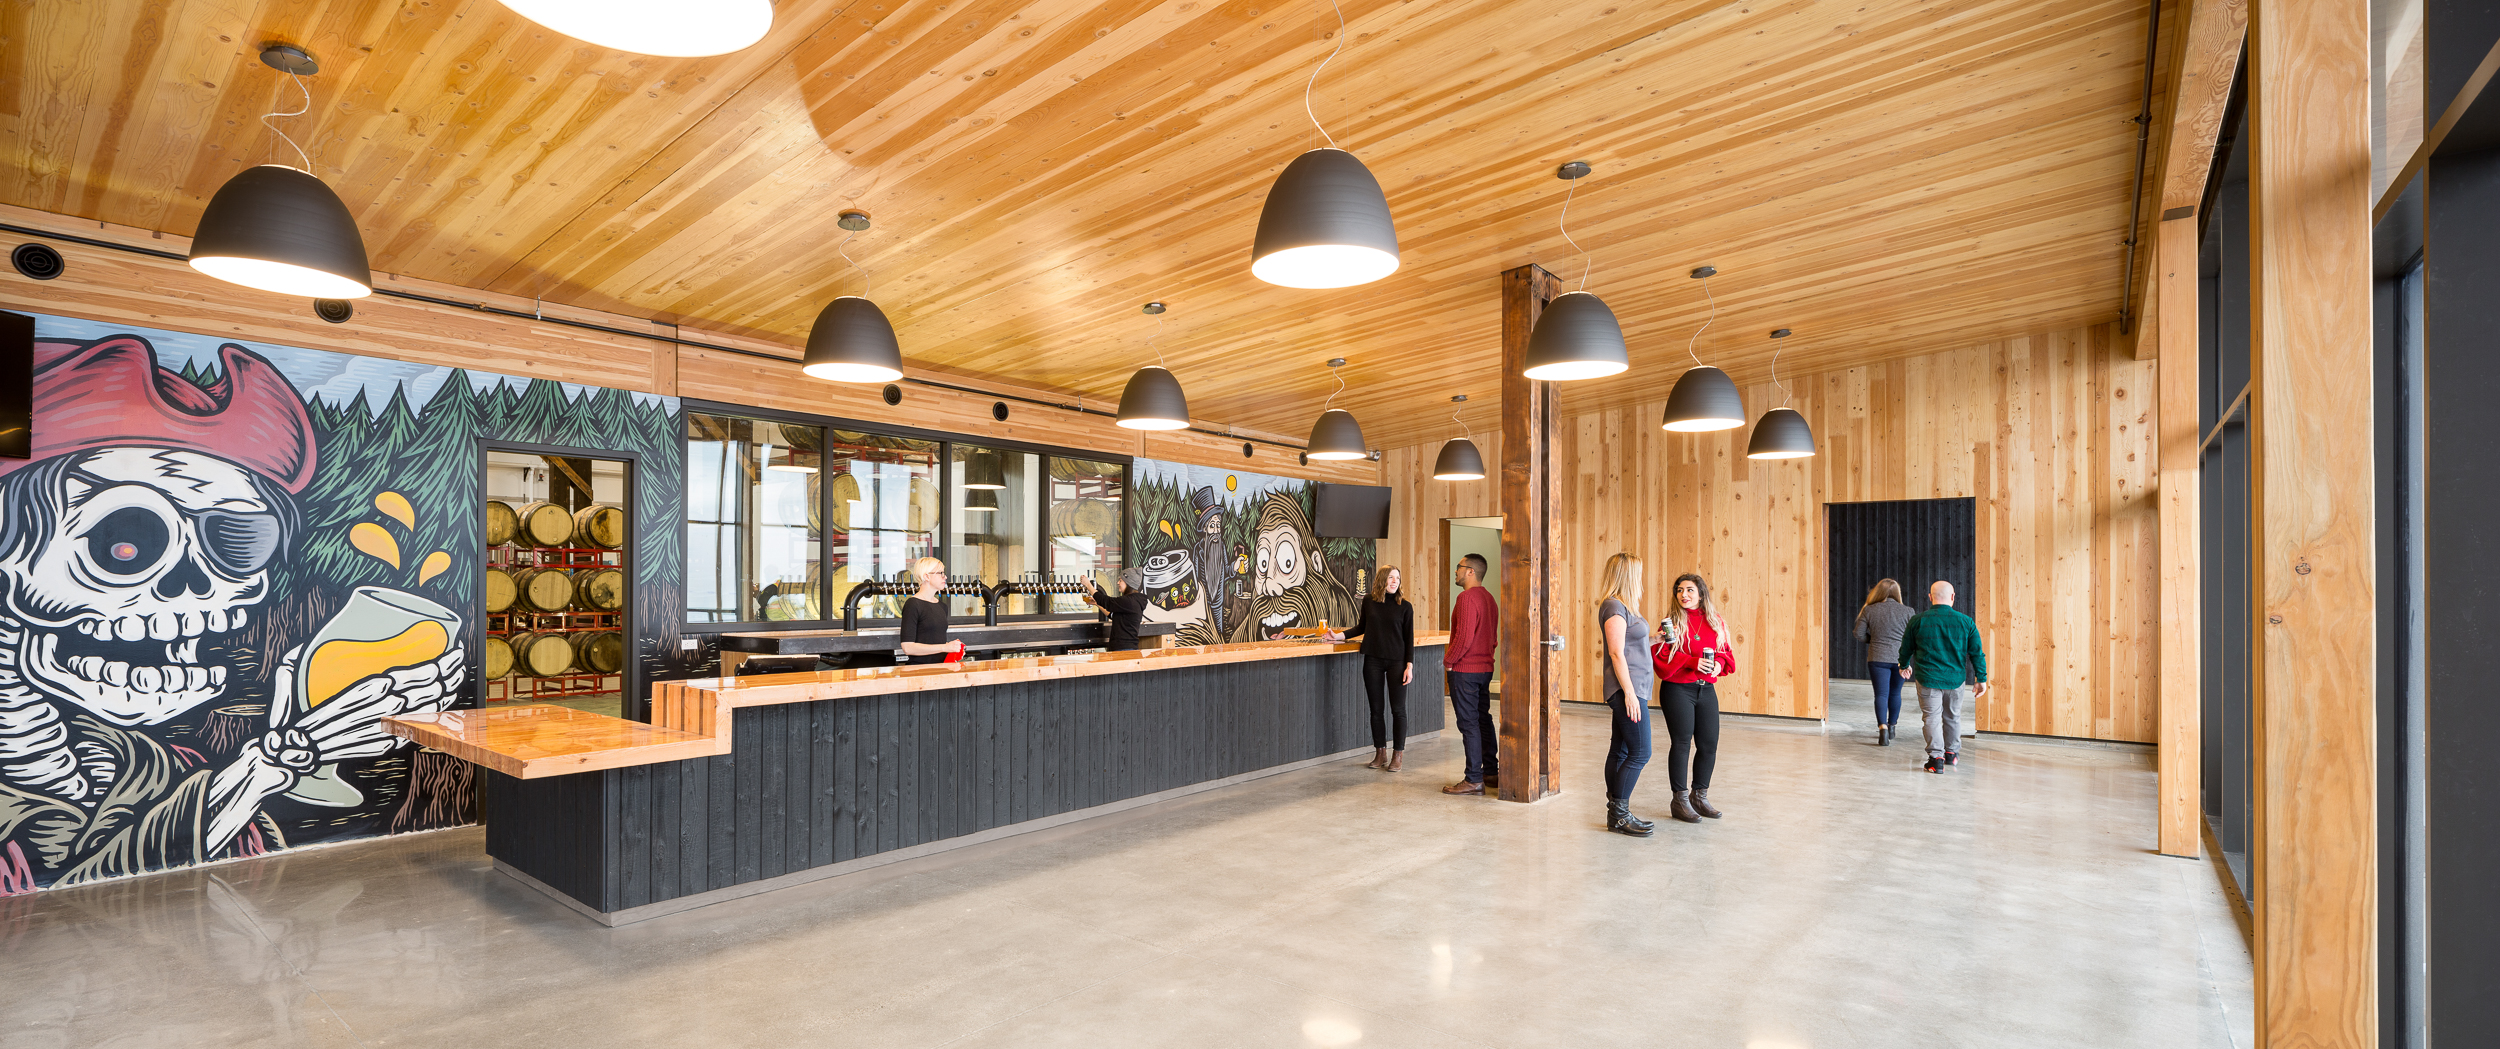 Great Notion Brewing, NW Portland / ZGF Architects